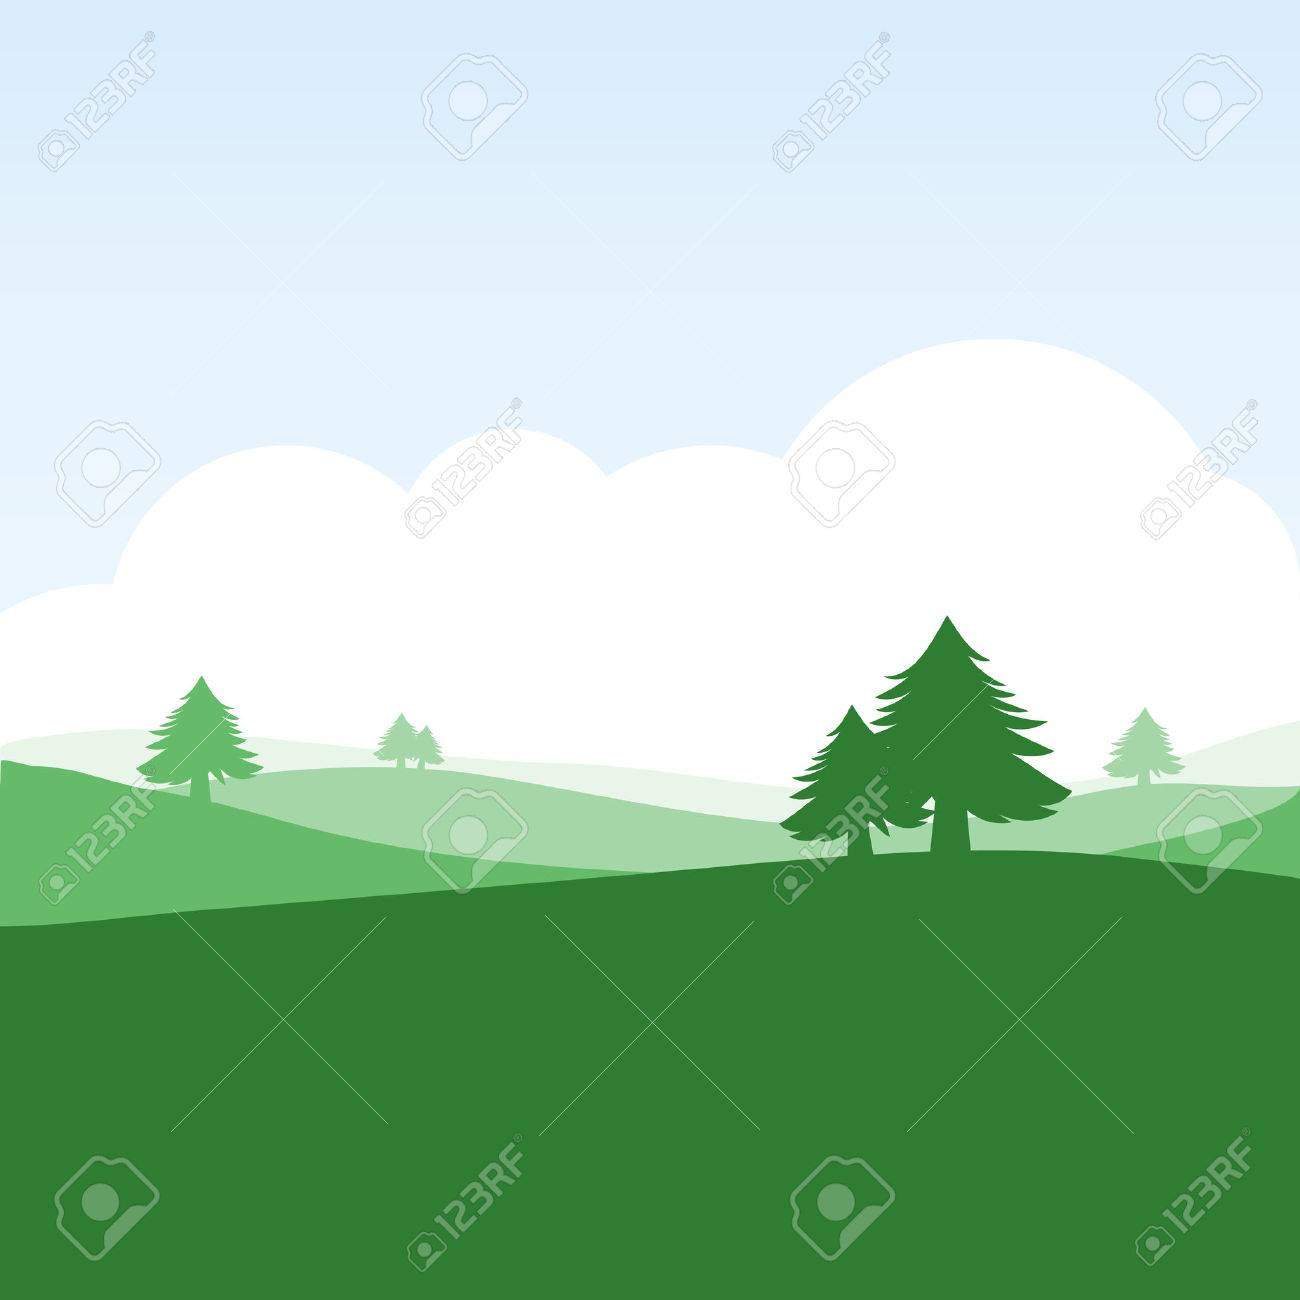 colorful silhouette landscape of countryside for graphic design and website - 36623412